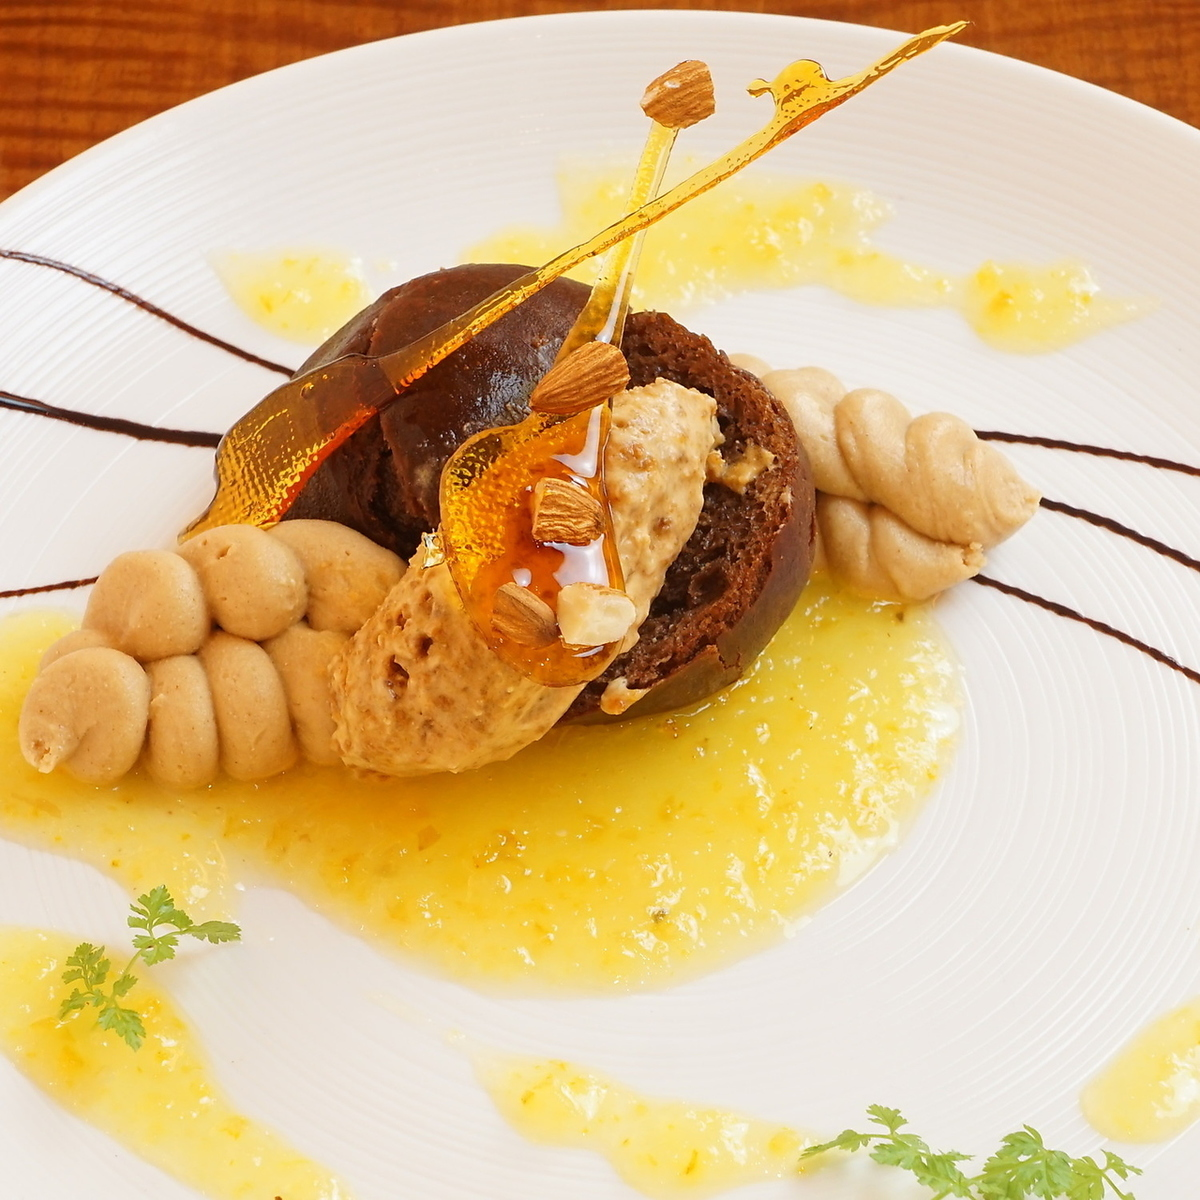 Pear caramelize and compote with cinnamon scented red wine semi-fred